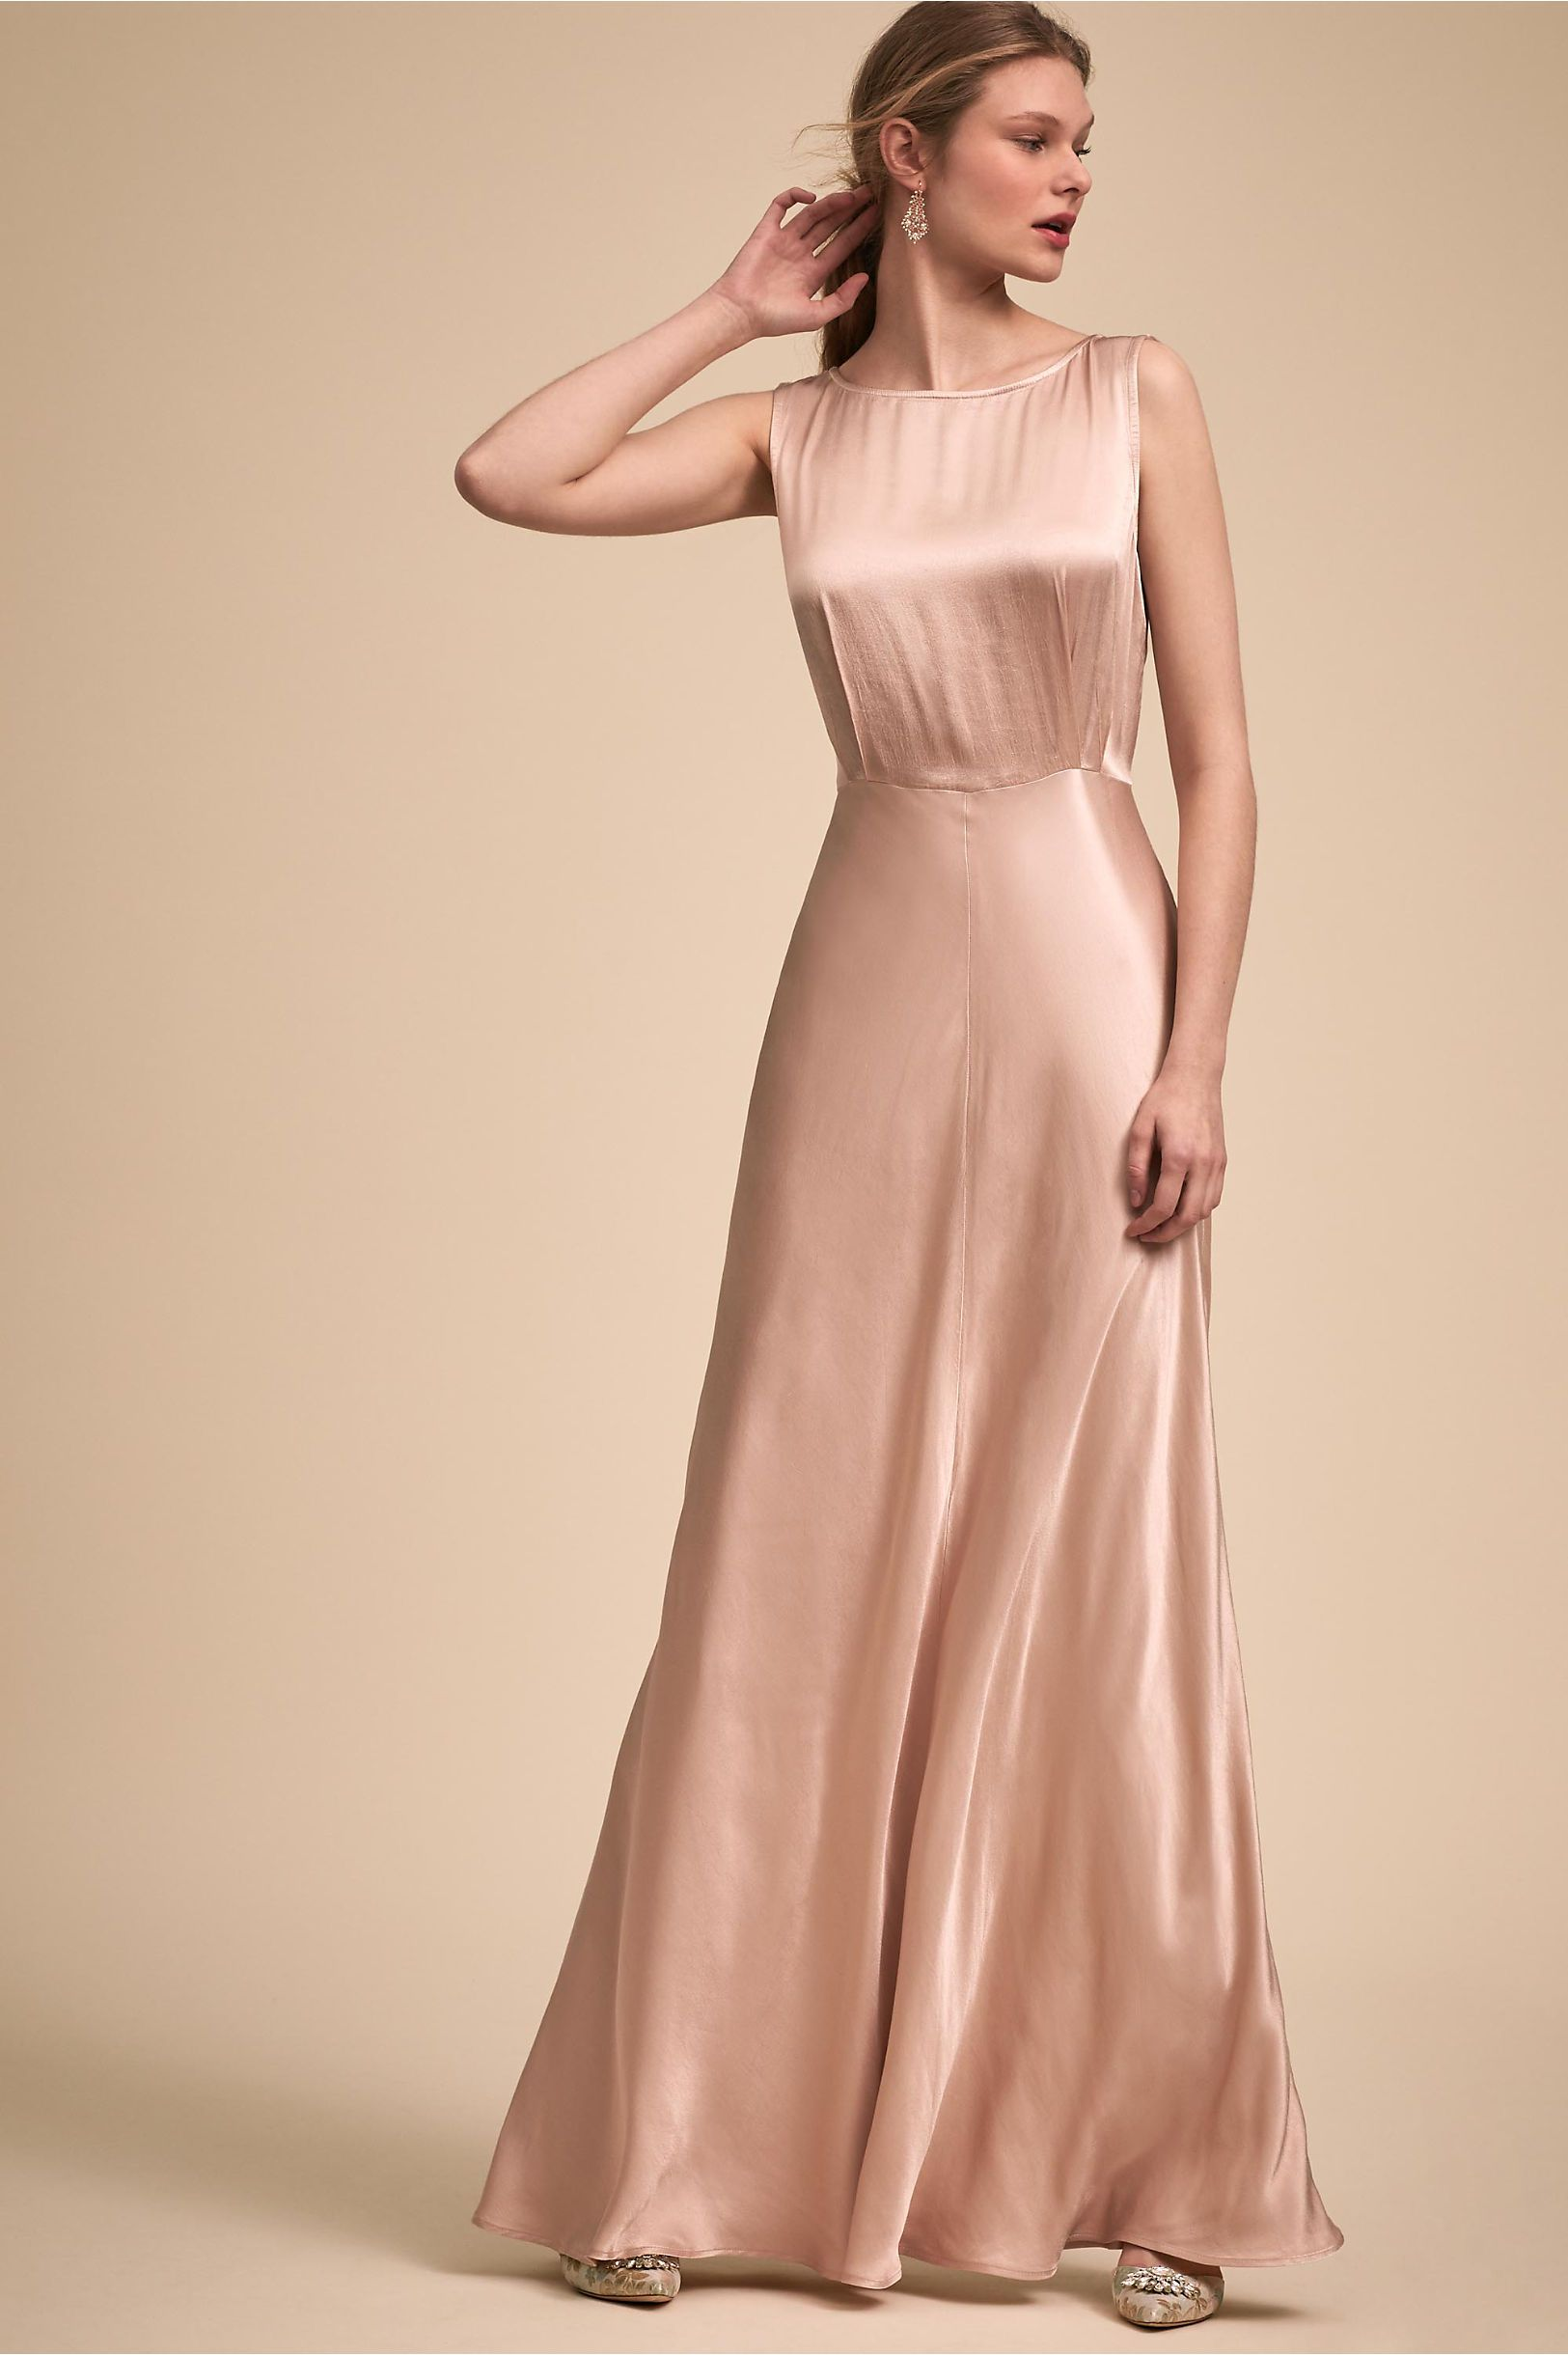 7e9dbd938c14 Sleek and luxurious, this column gown features an ultra-flattering bias cut  and a long row of decorative covered buttons.